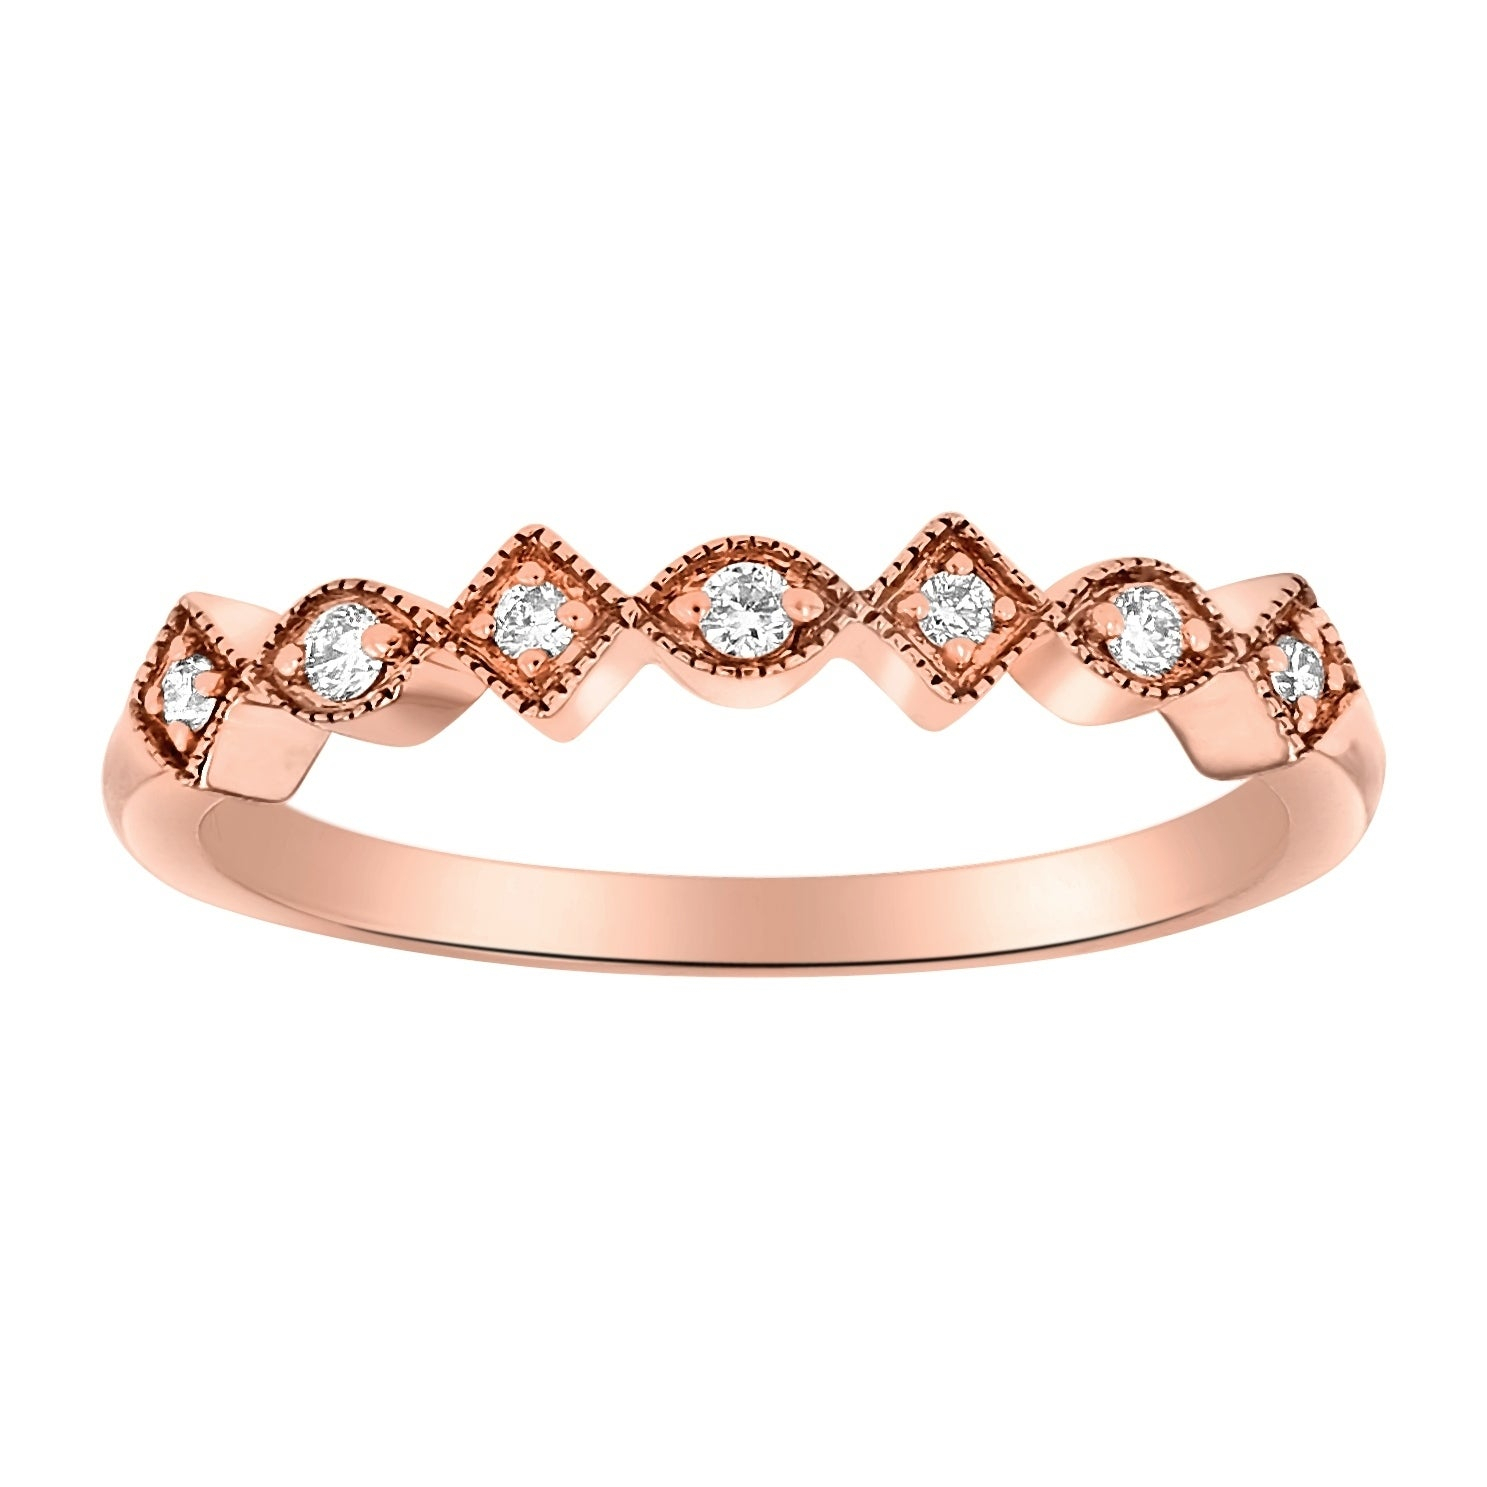 14K Rose Gold 1/10Ct Tdw Diamond Vintage Inspired Anniversary Band Ring –  White H I Pertaining To Most Up To Date Diamond Vintage Style Anniversary Bands In Rose Gold (View 4 of 25)